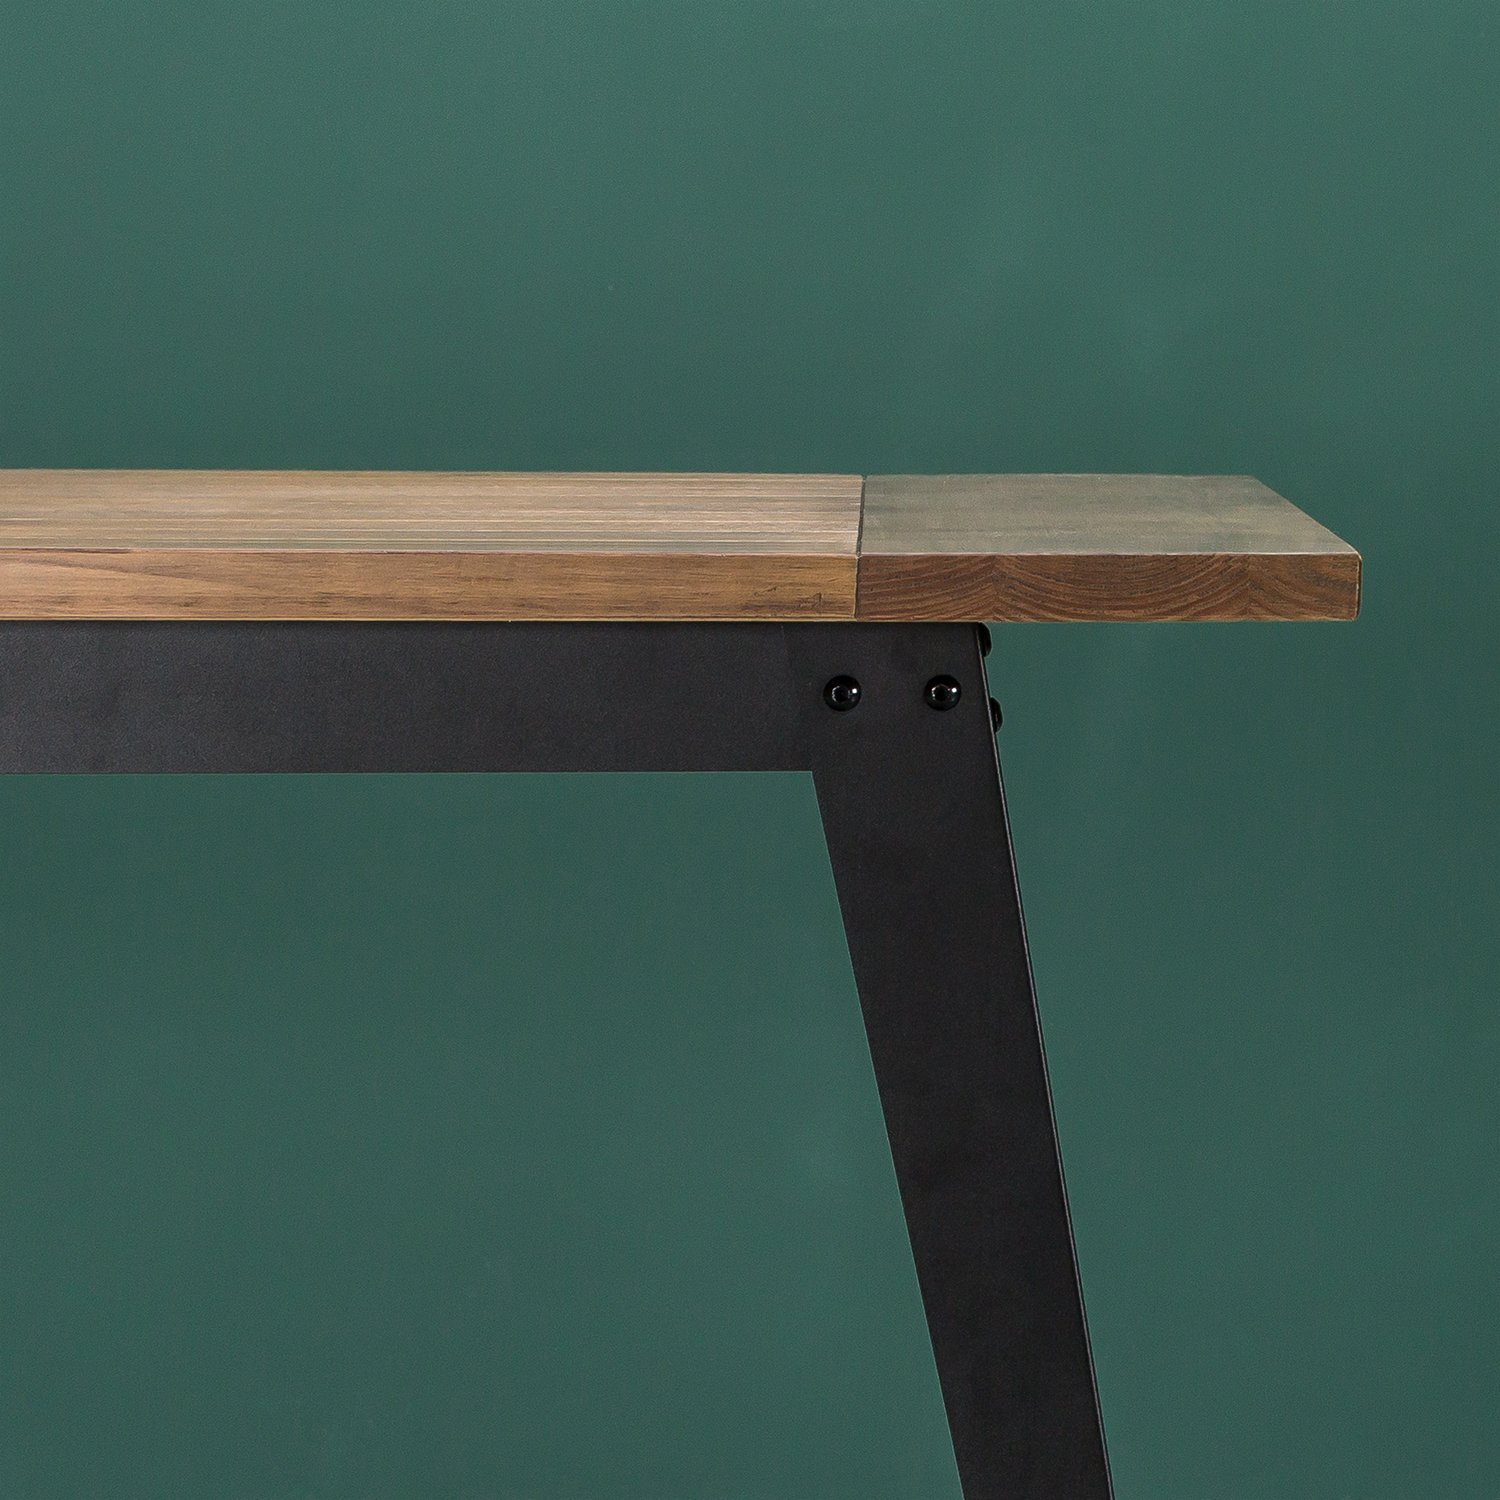 Zinus Donna Wood and Metal Dining Table by Zinus (Image #5)